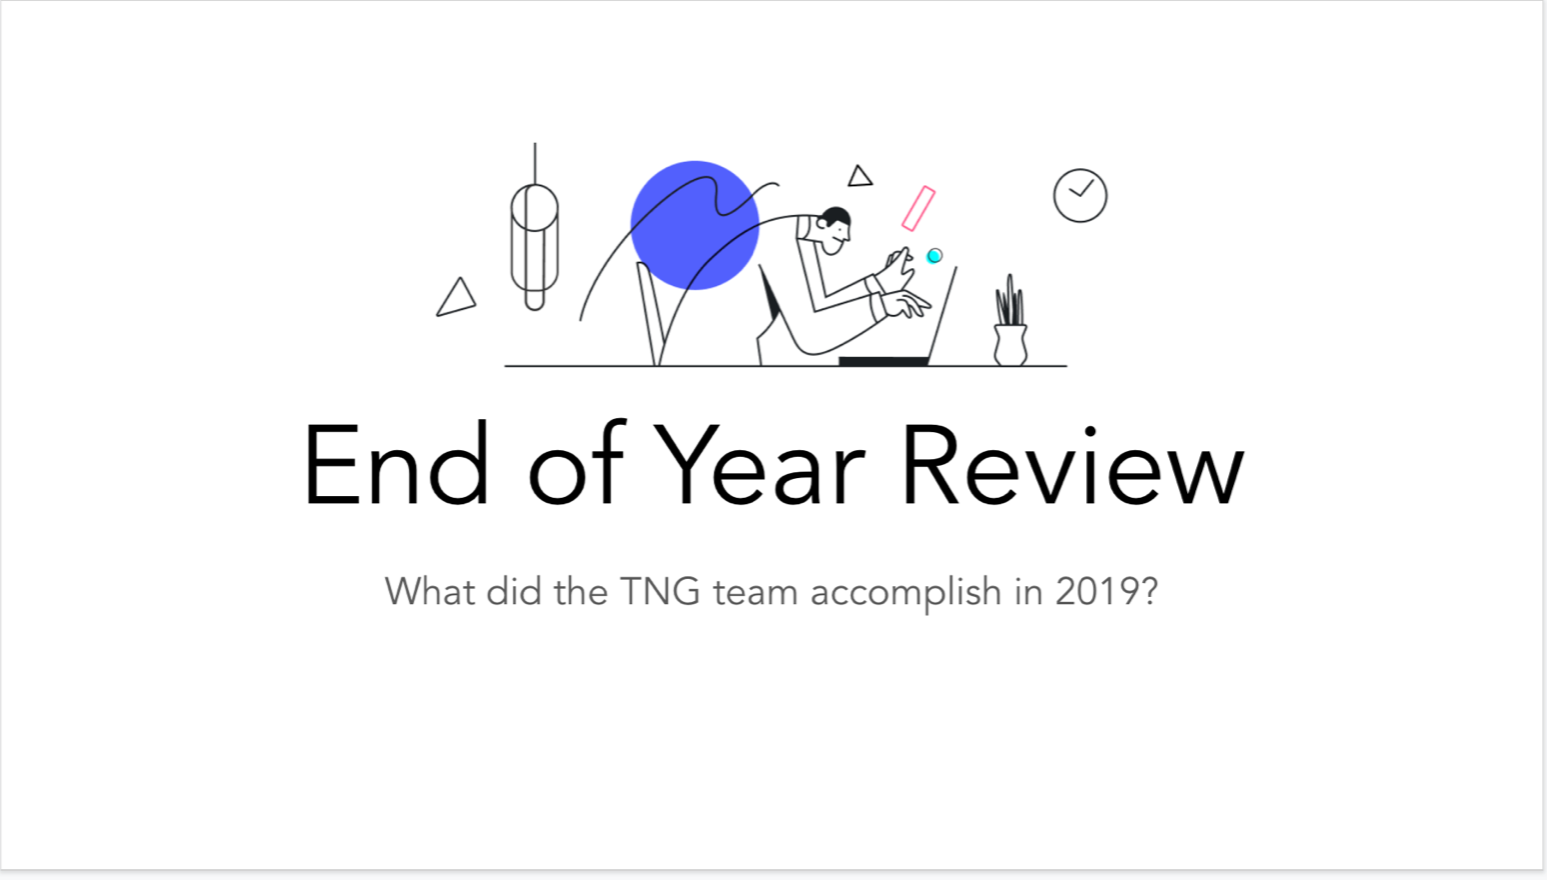 What Did TNG Accomplish This Year?